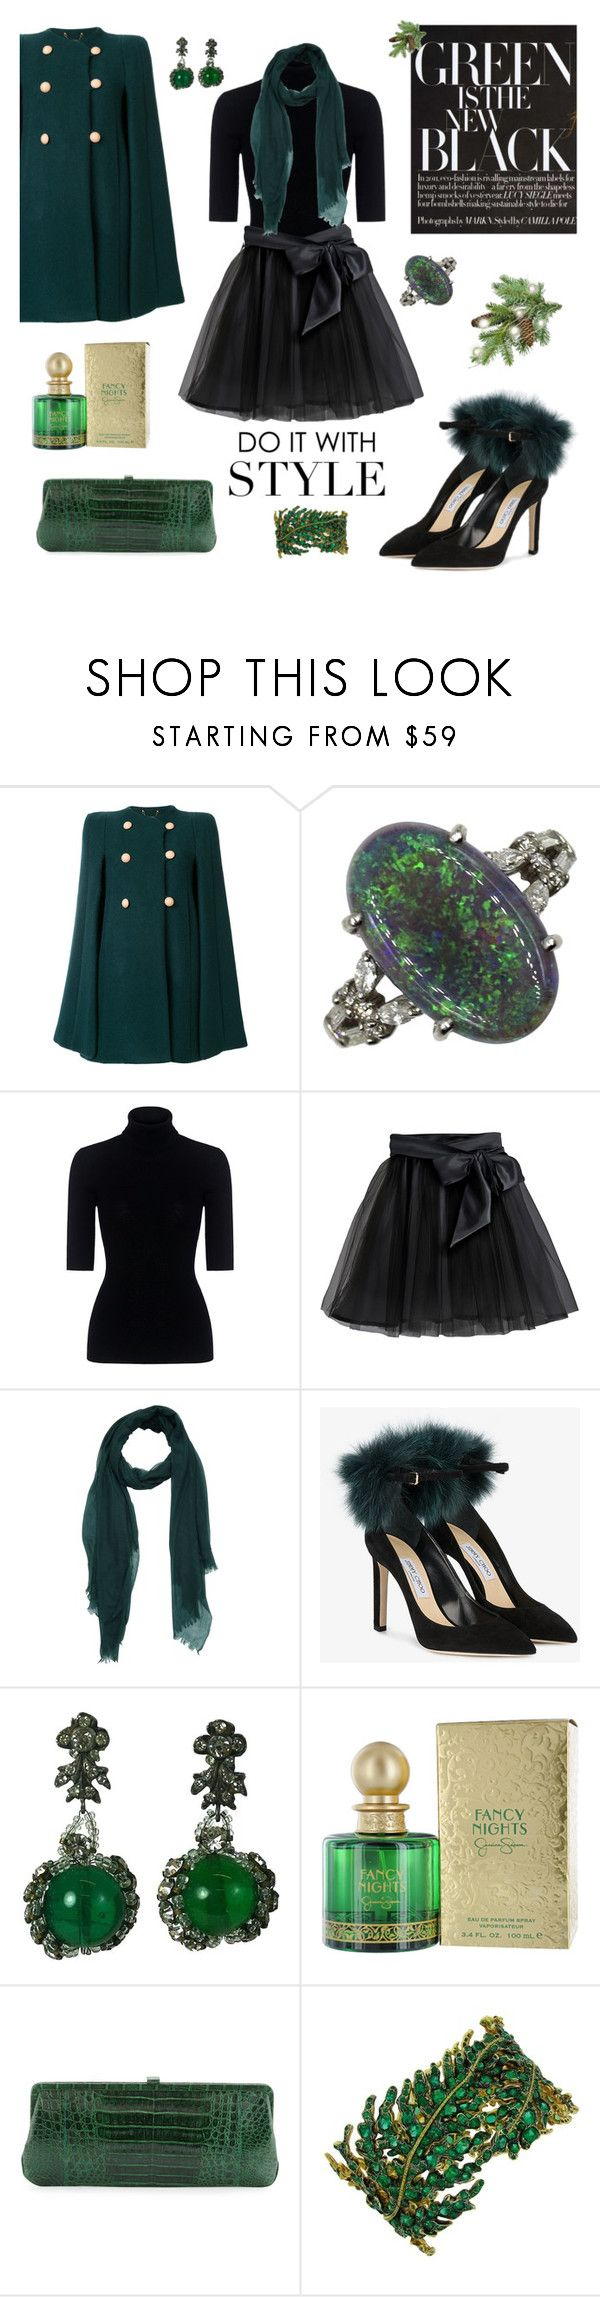 """""""EverGREEN Forest"""" by closet-freak ❤ liked on Polyvore featuring Chloé, Theory, Little Wardrobe London, Jimmy Choo, Louis Rousselet, Jessica Simpson, Nancy Gonzalez, Christmas, GREEN and greencoat"""